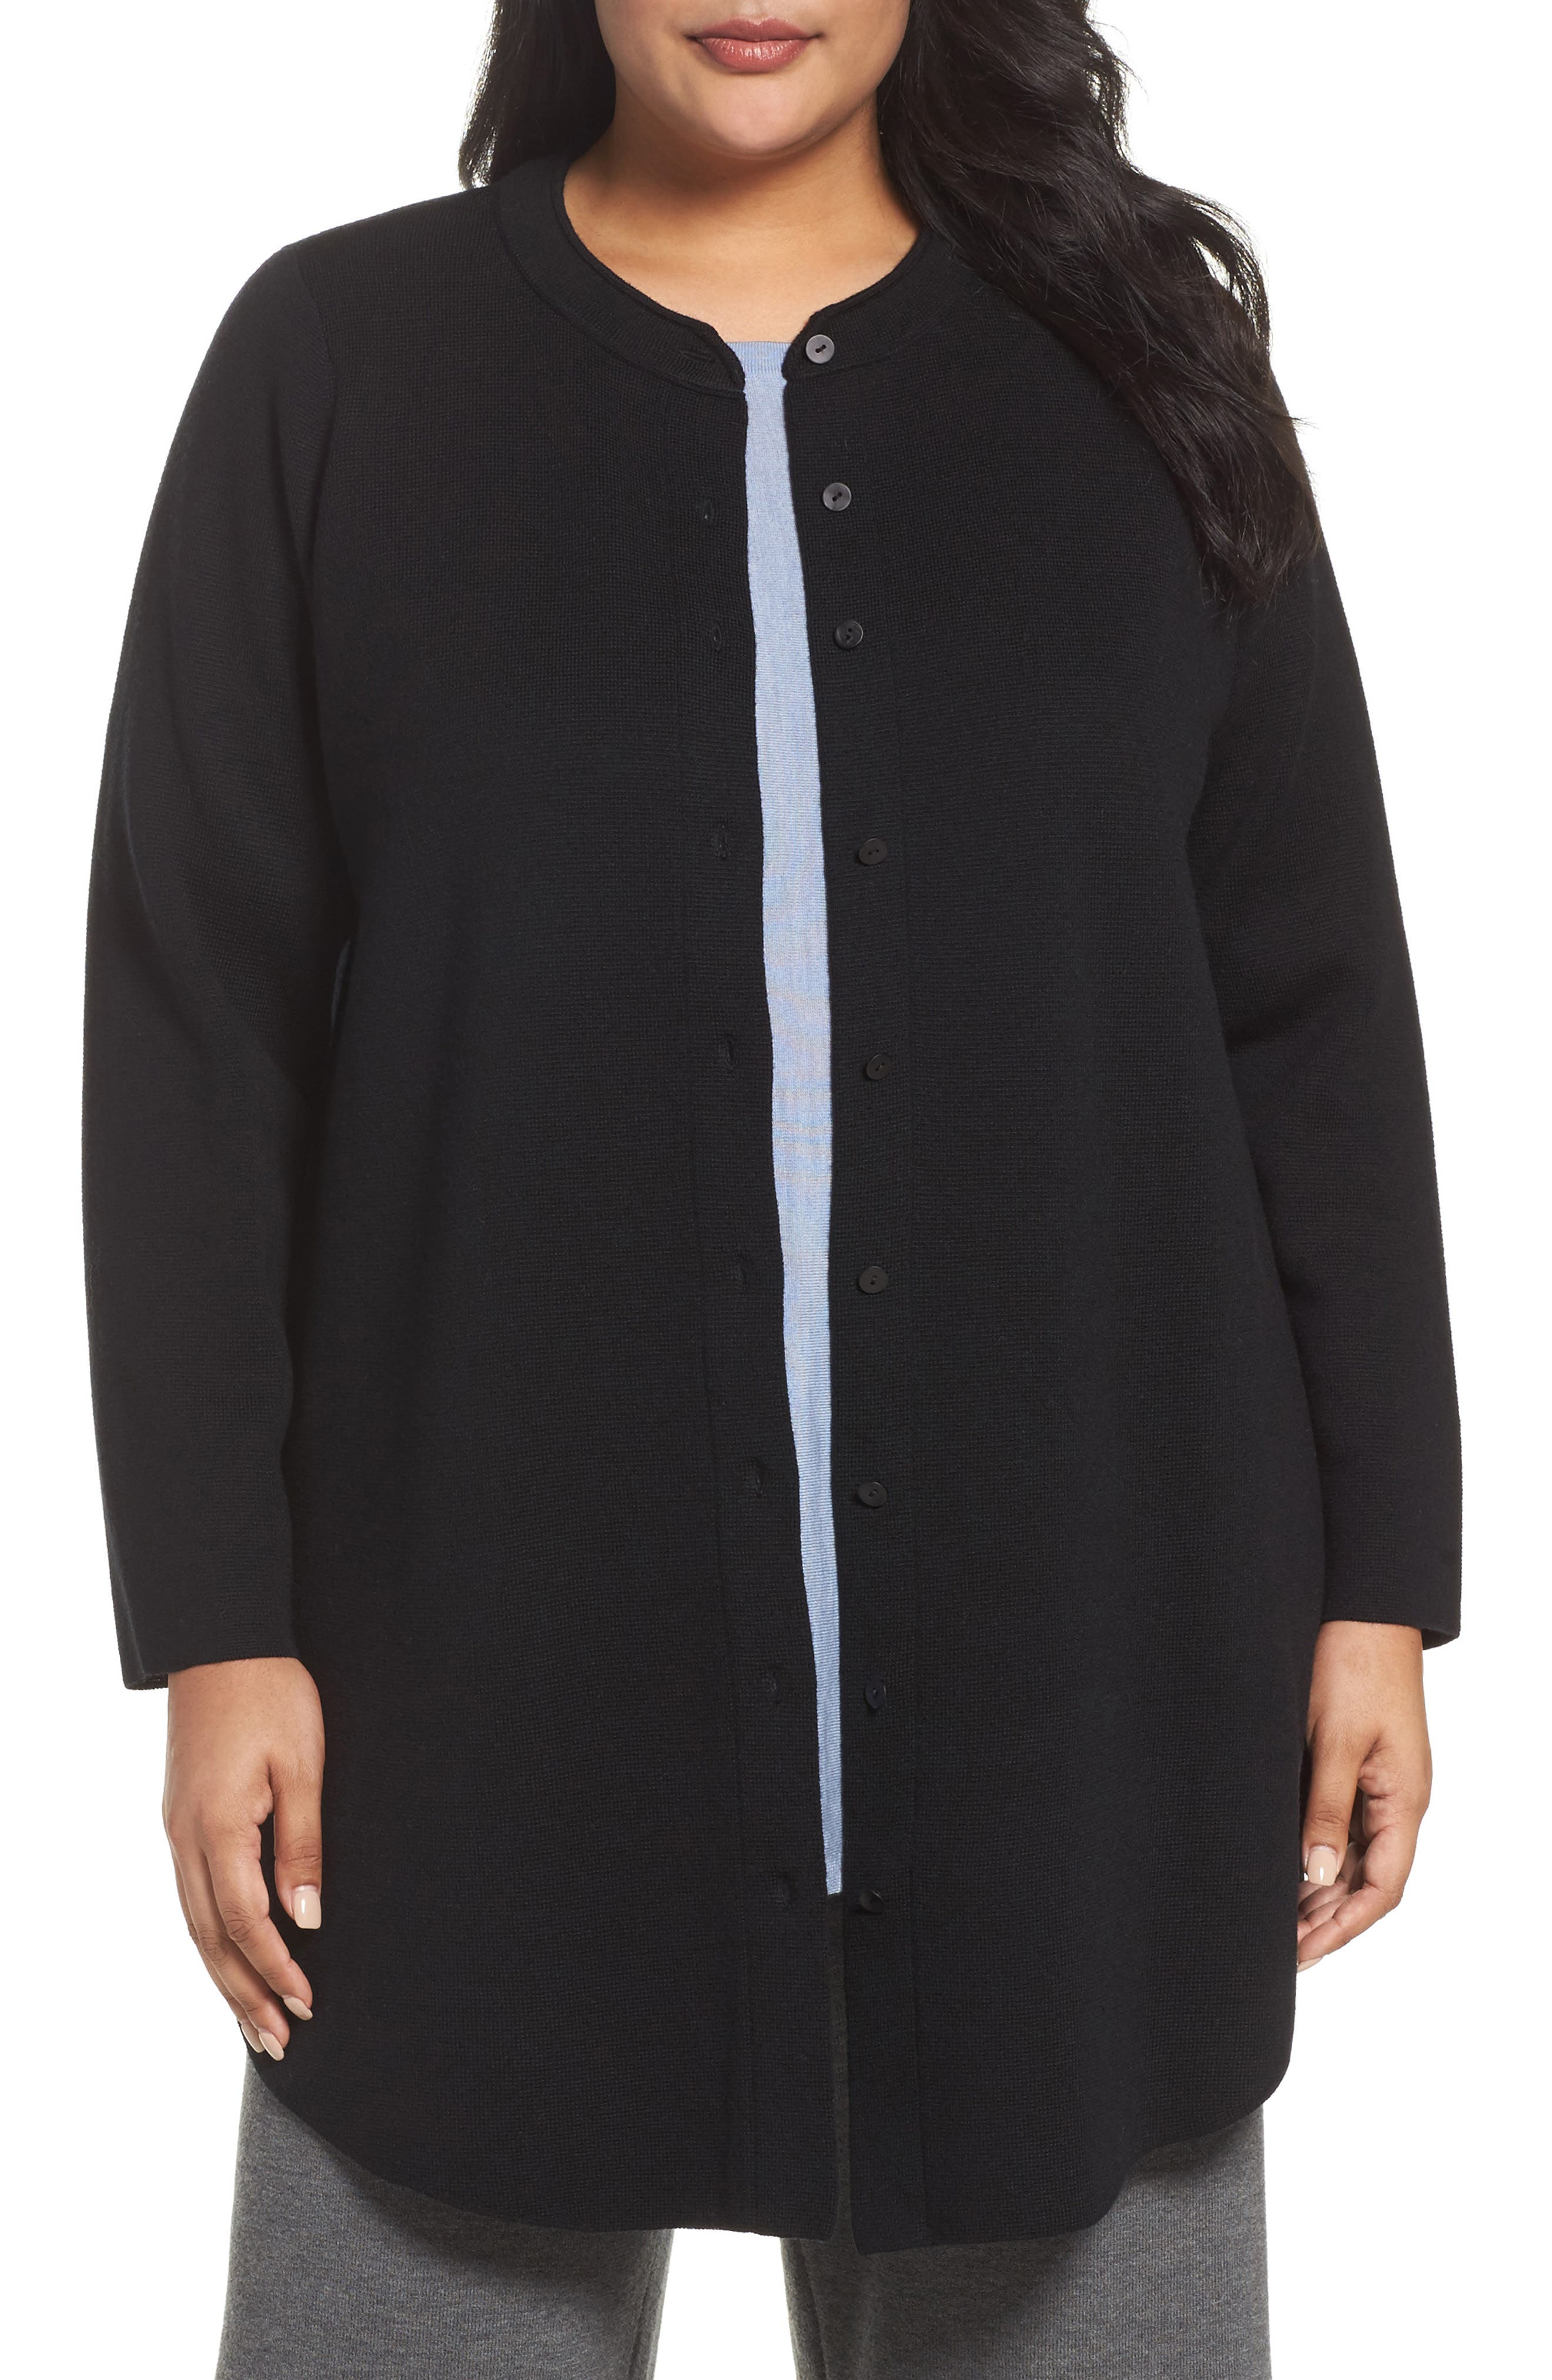 Main Image - Eileen Fisher Mandarin Collar Merino Cardigan (Plus Size)